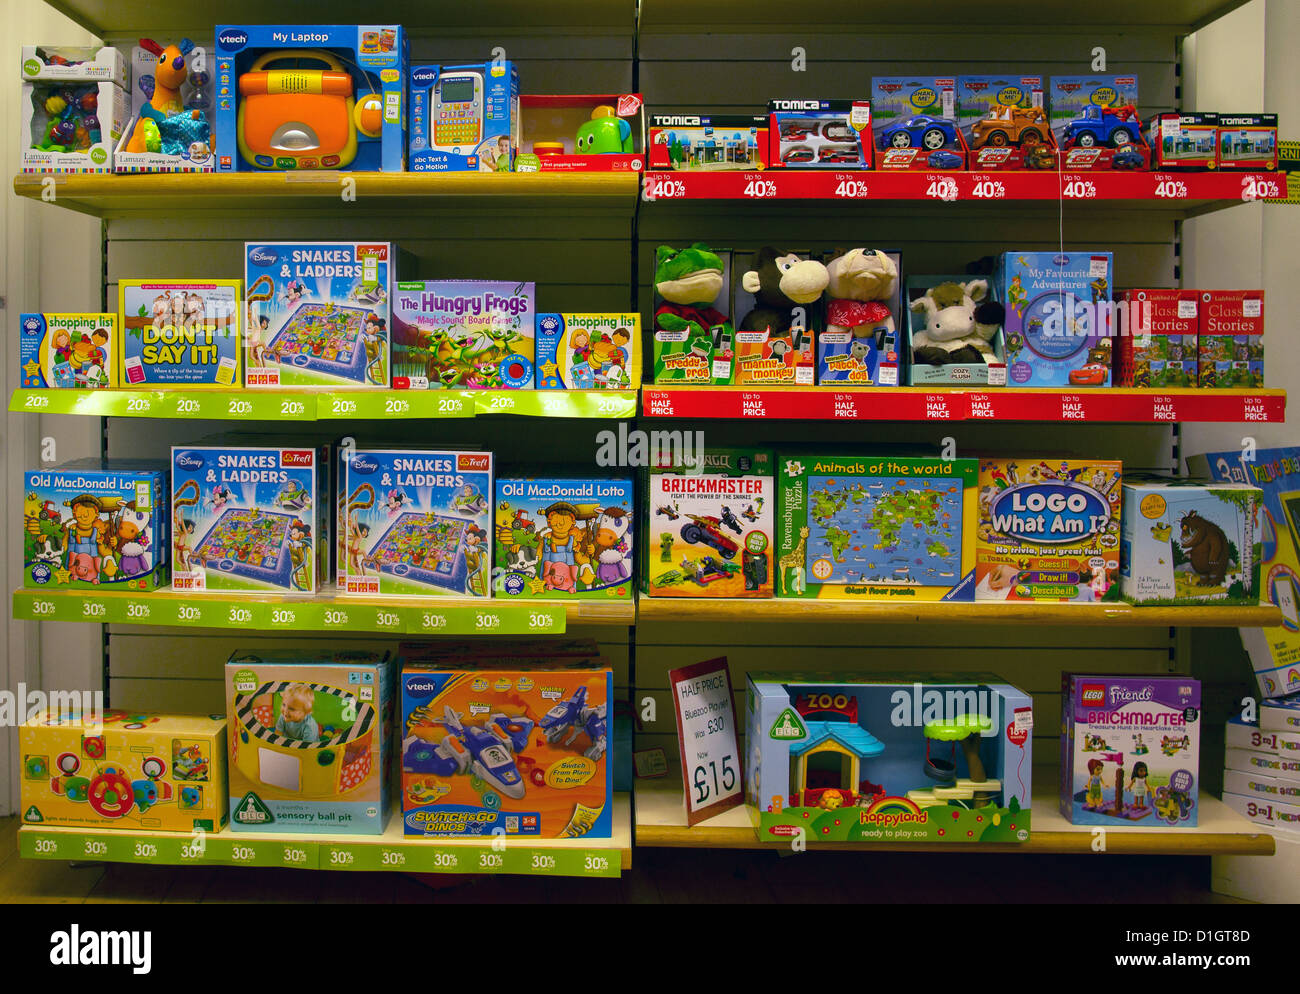 Snakes Ladders Games Stock Photos Amp Snakes Ladders Games